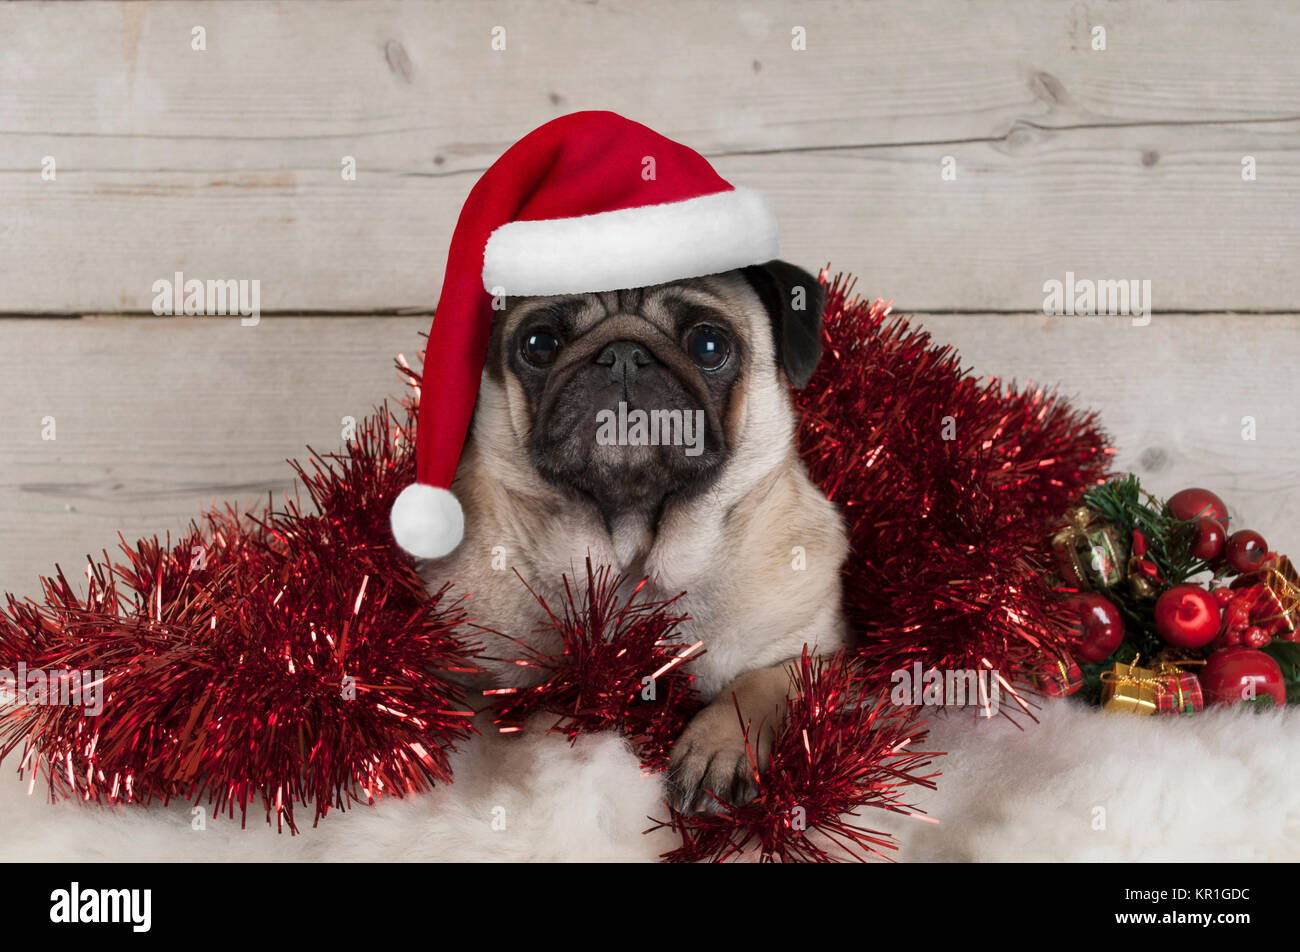 cute Christmas pug puppy dog, lying down in red tinsel wearing santa claus hat, on sheepskin with ornaments and - Stock Image